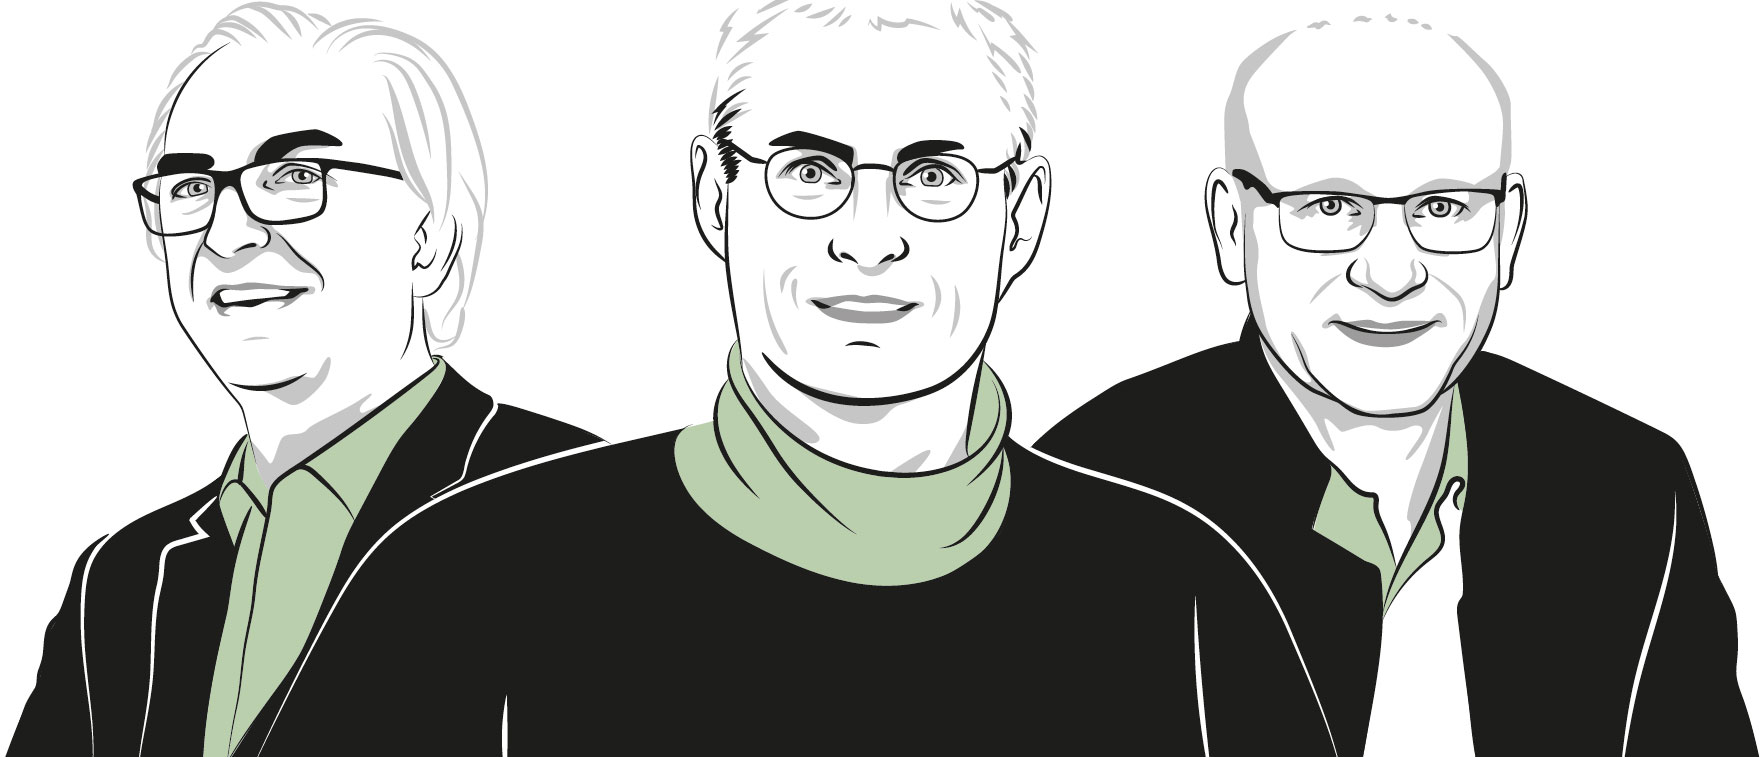 Illustrations of Urs Hirschberg, Martin Fellendorf and Christoph Hochenauer